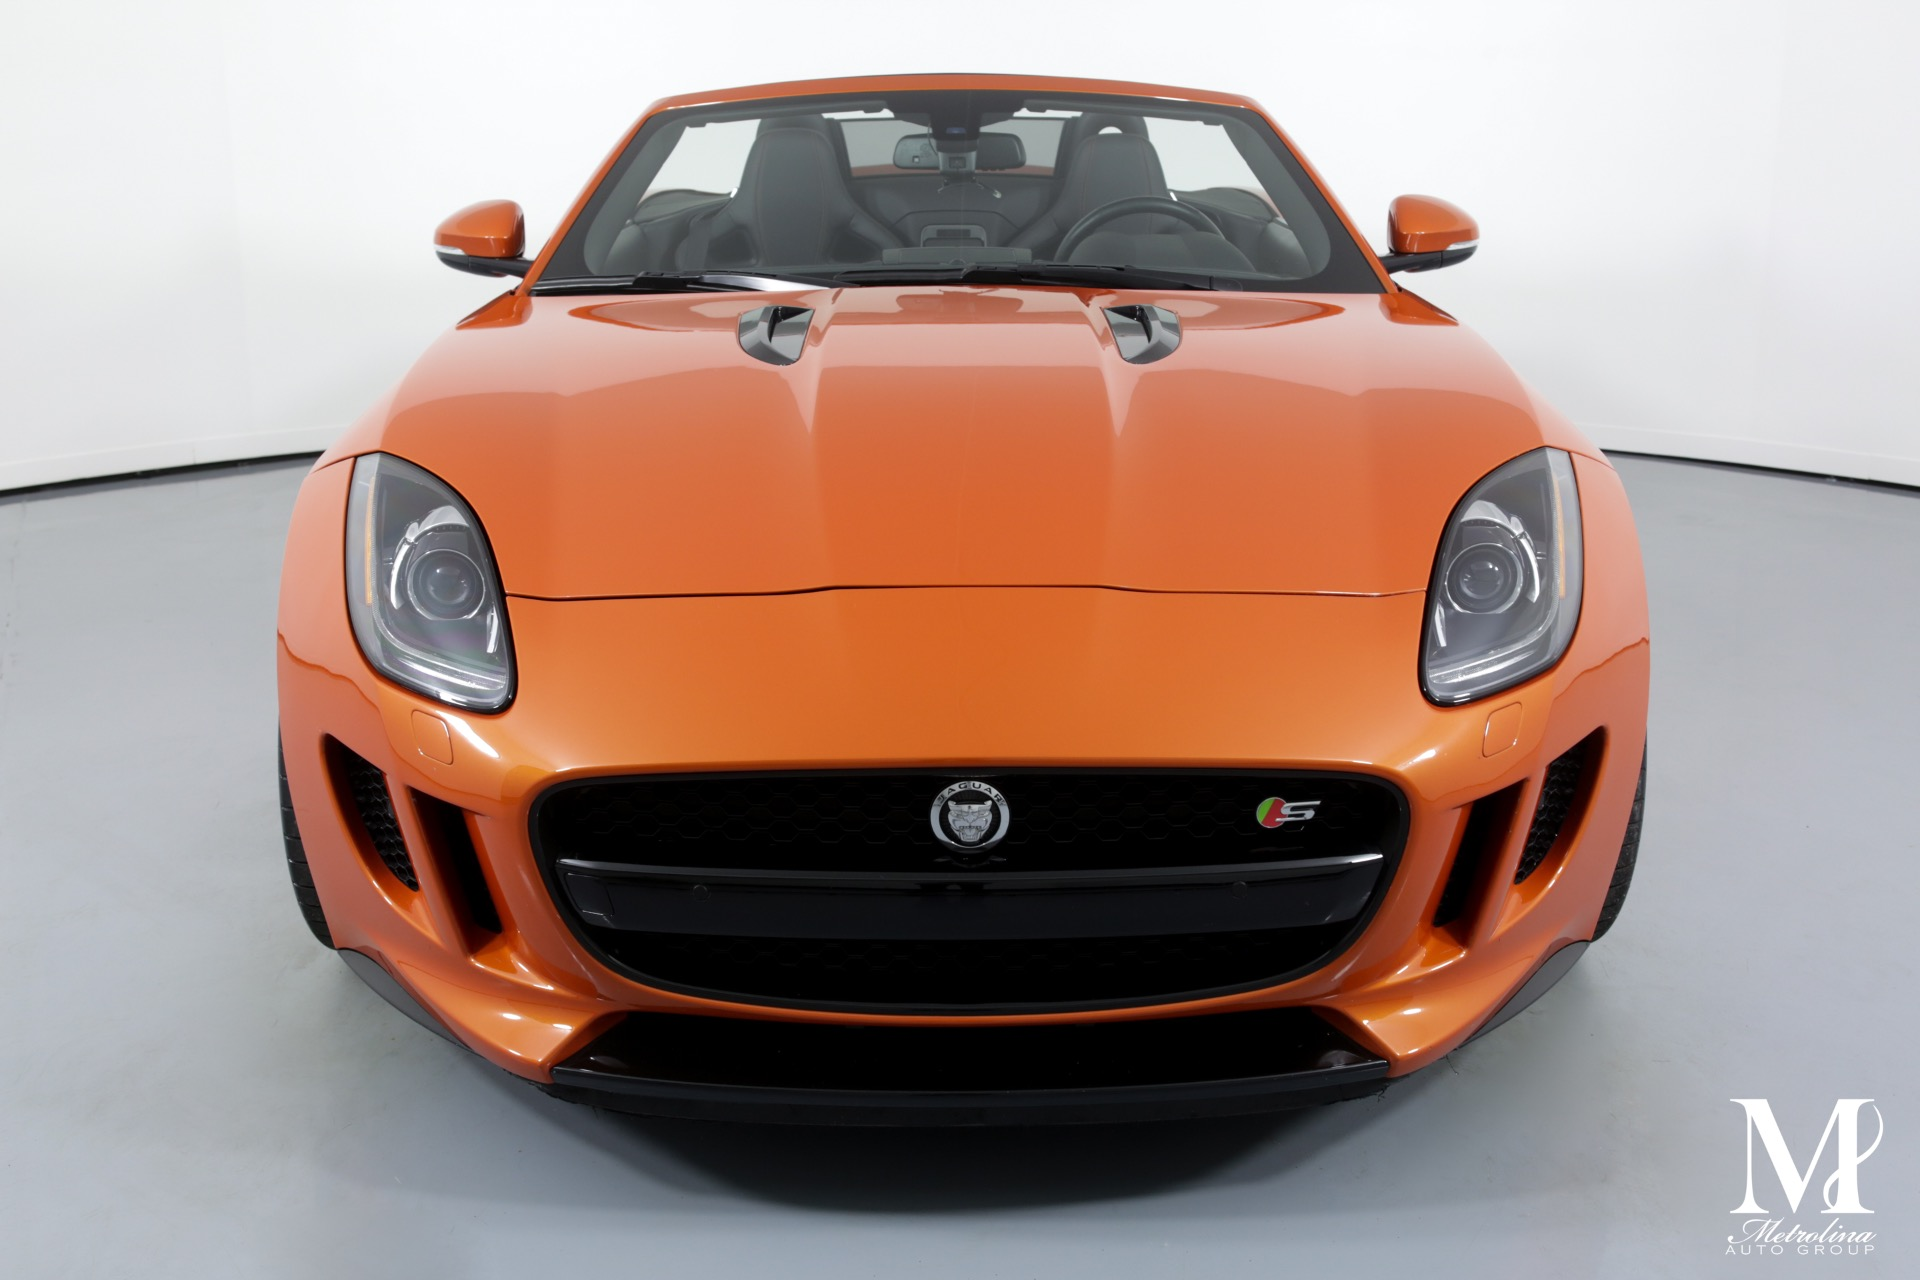 Used 2014 Jaguar F-TYPE V8 S for sale $40,996 at Metrolina Auto Group in Charlotte NC 28217 - 4